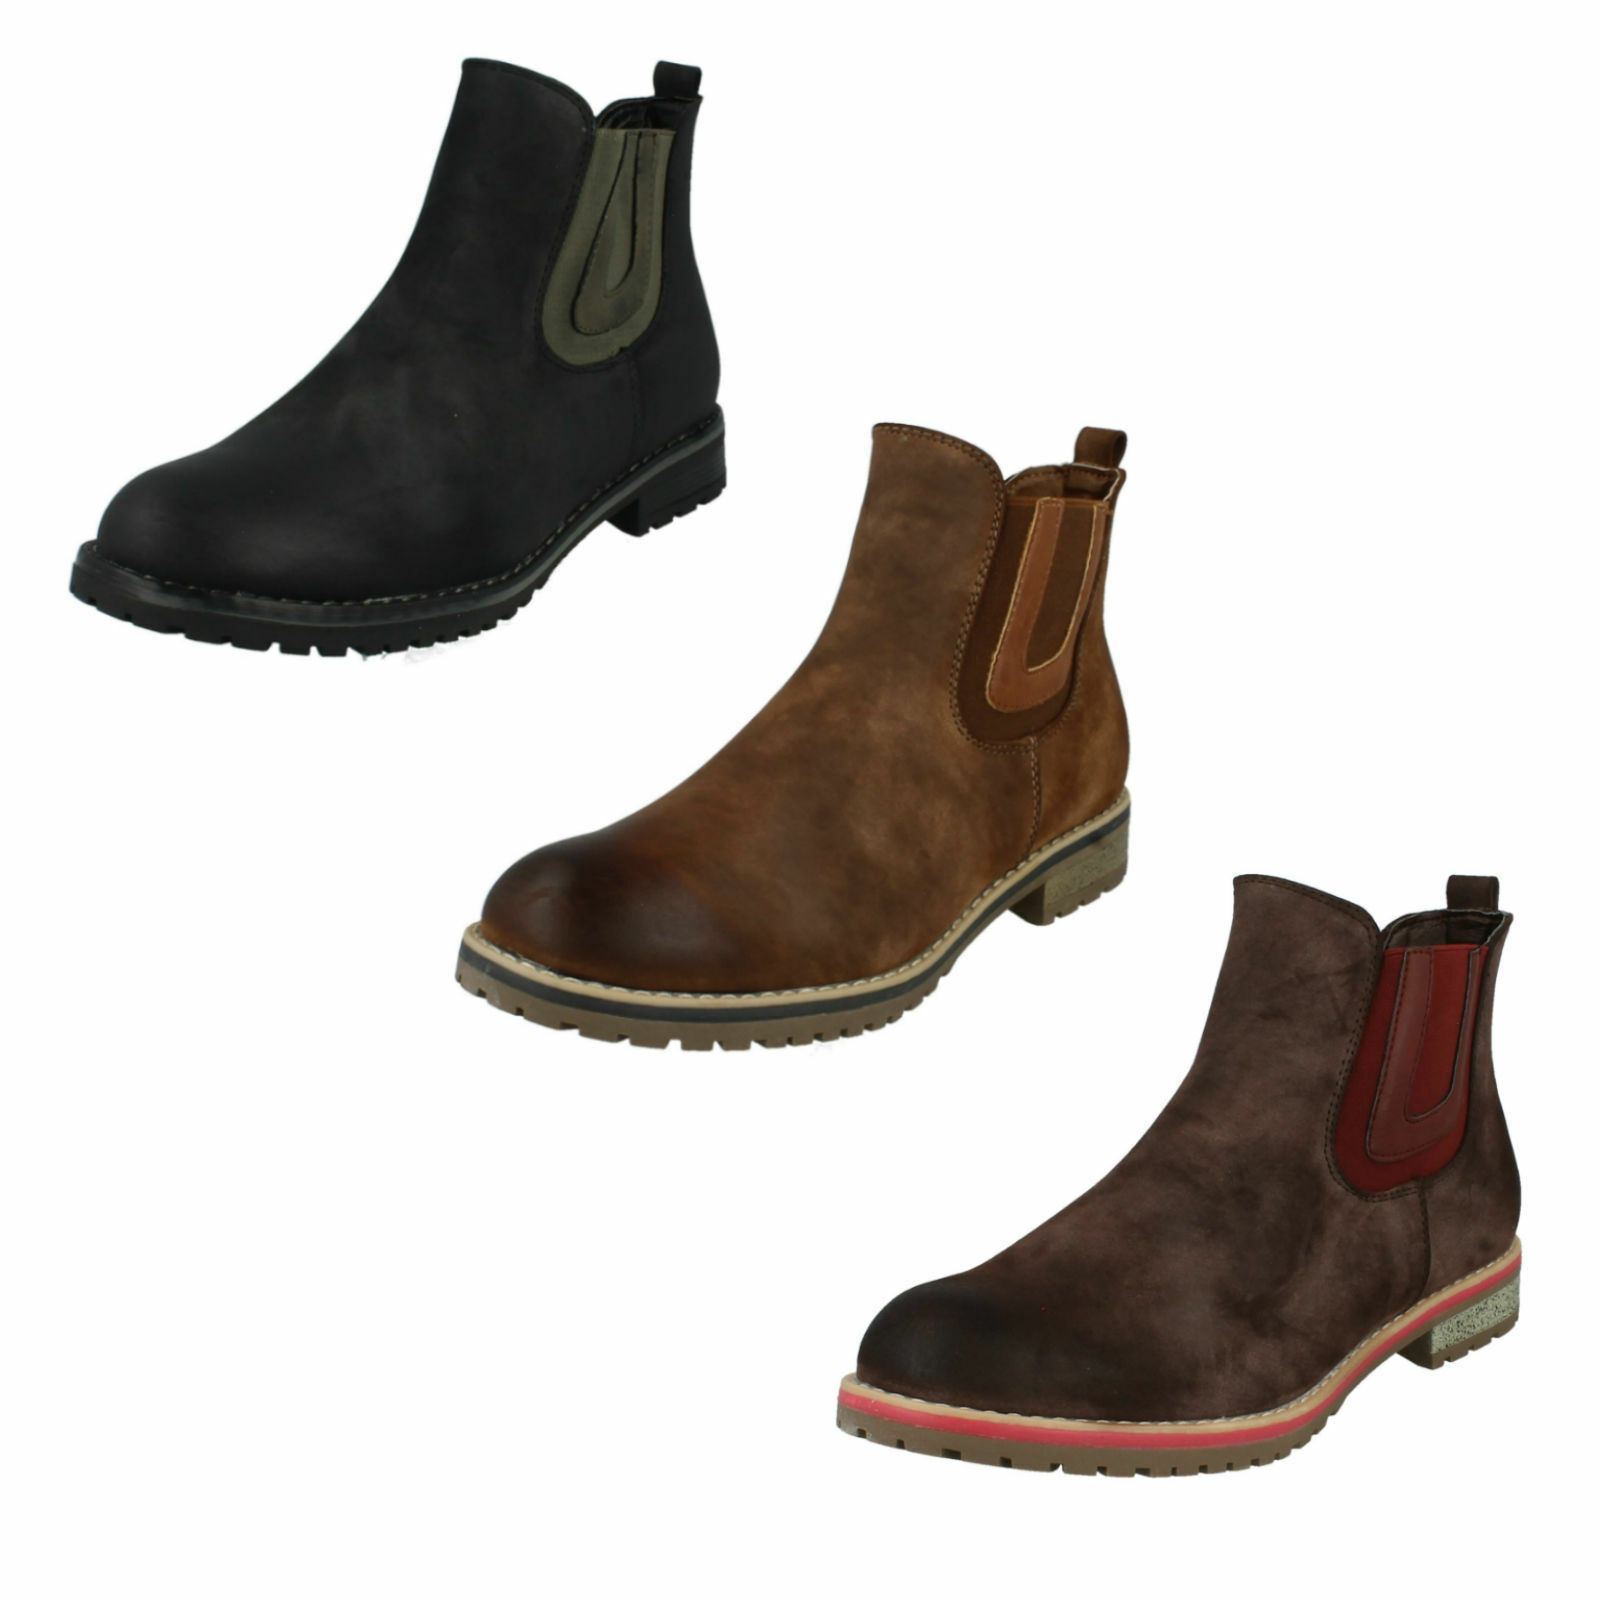 DOWN TO Tierra Mujer chelsea boots 'f50566'